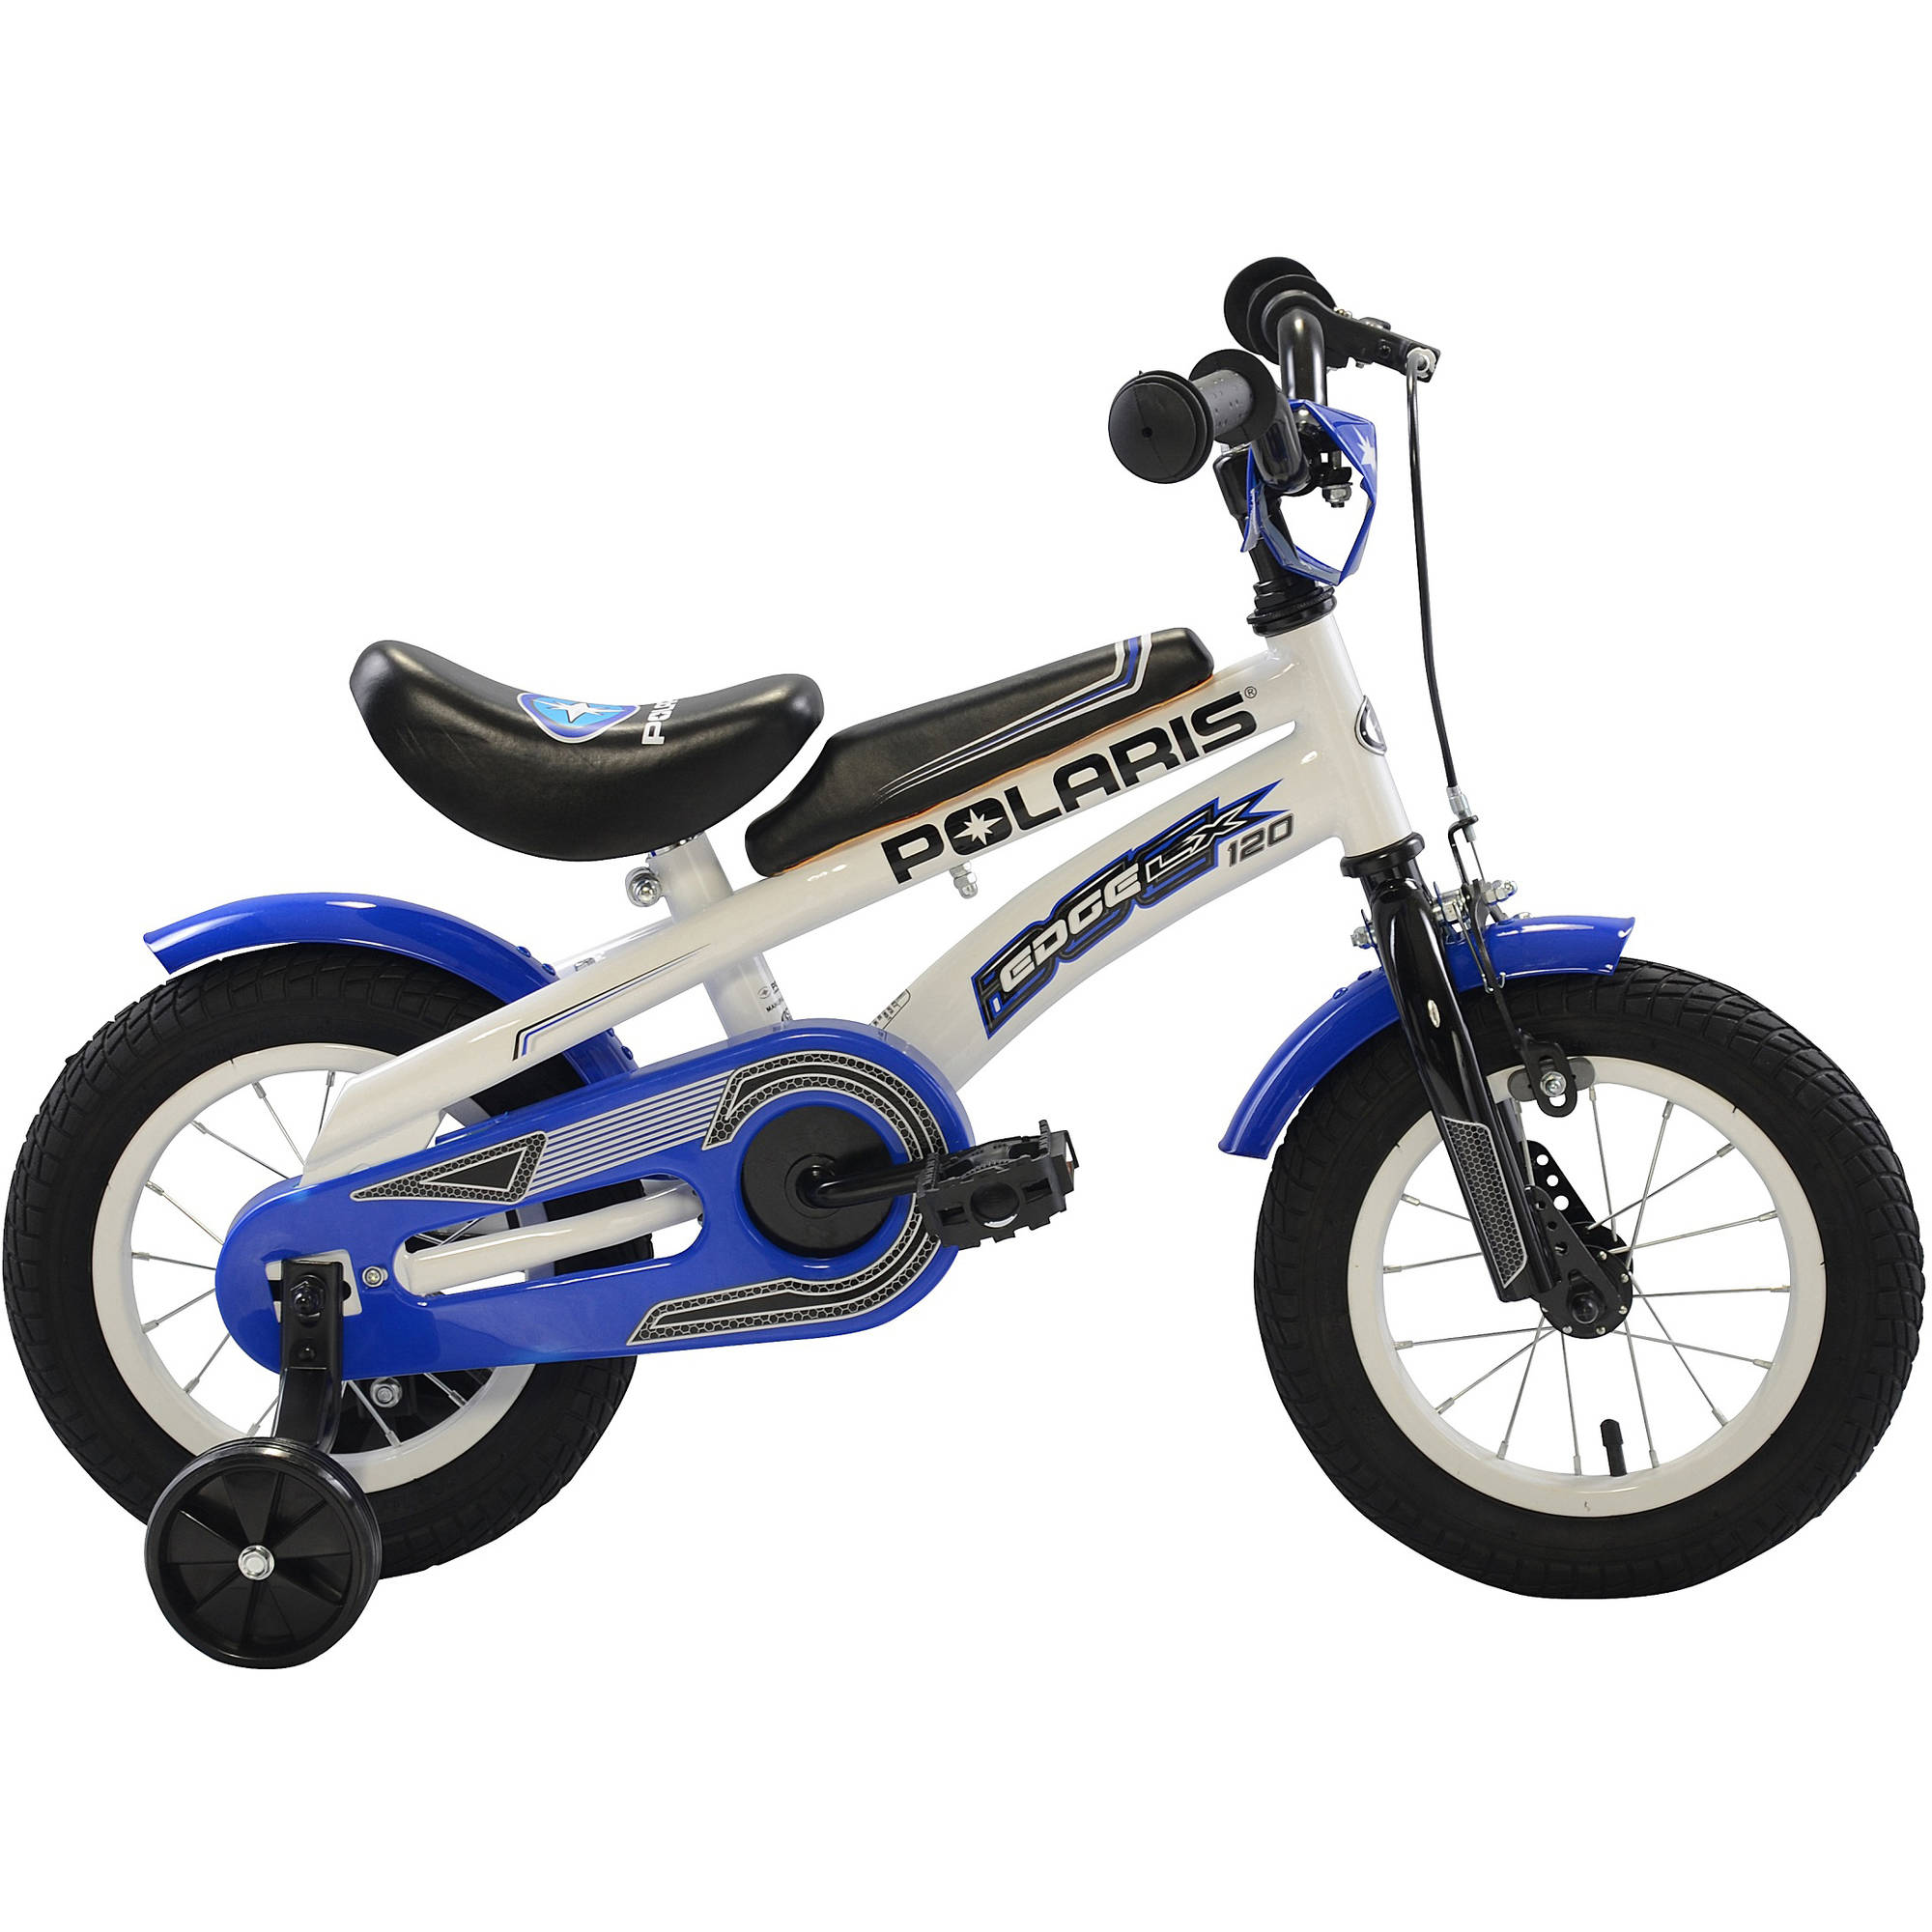 Polaris Edge LX120 12 Kids Bicycle by Cycle Force Group